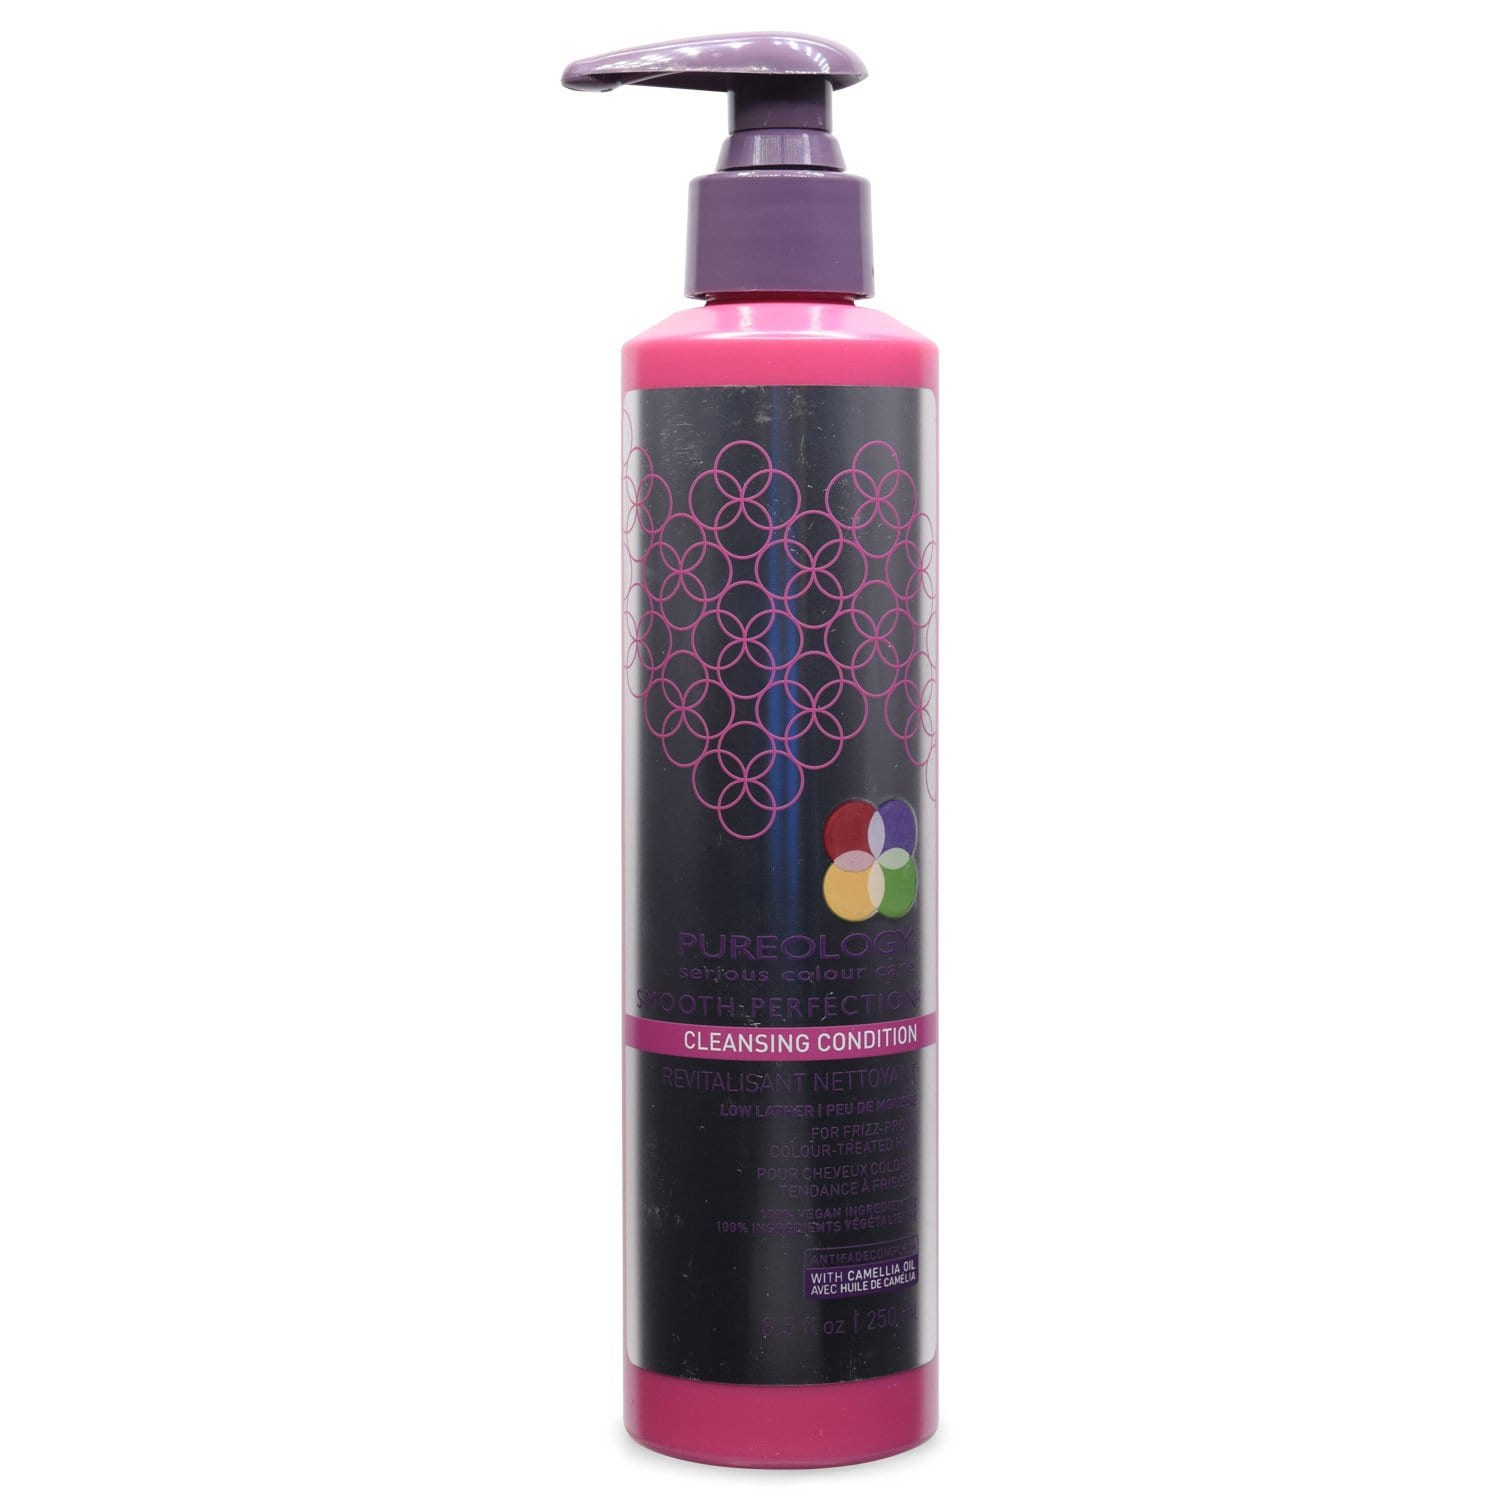 Pureology Smooth Perfection Cleansing Condition 8.5 oz.